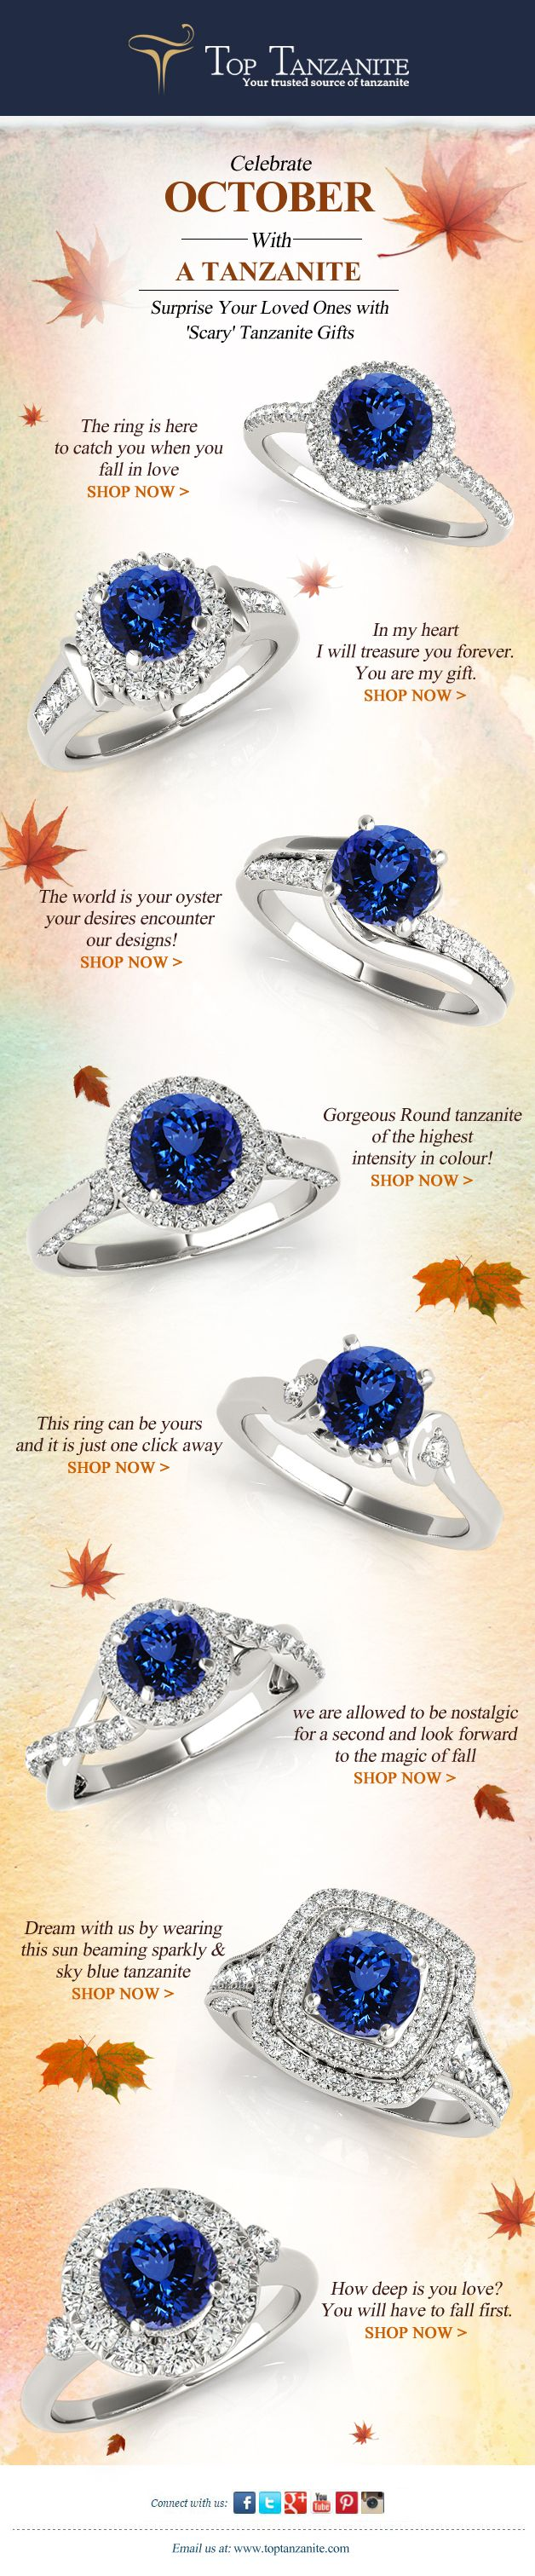 surprise your loved ones with scary tanzanite jewelry on this halloween this article if for most delightful halloween jewelry ideas - Article About Halloween